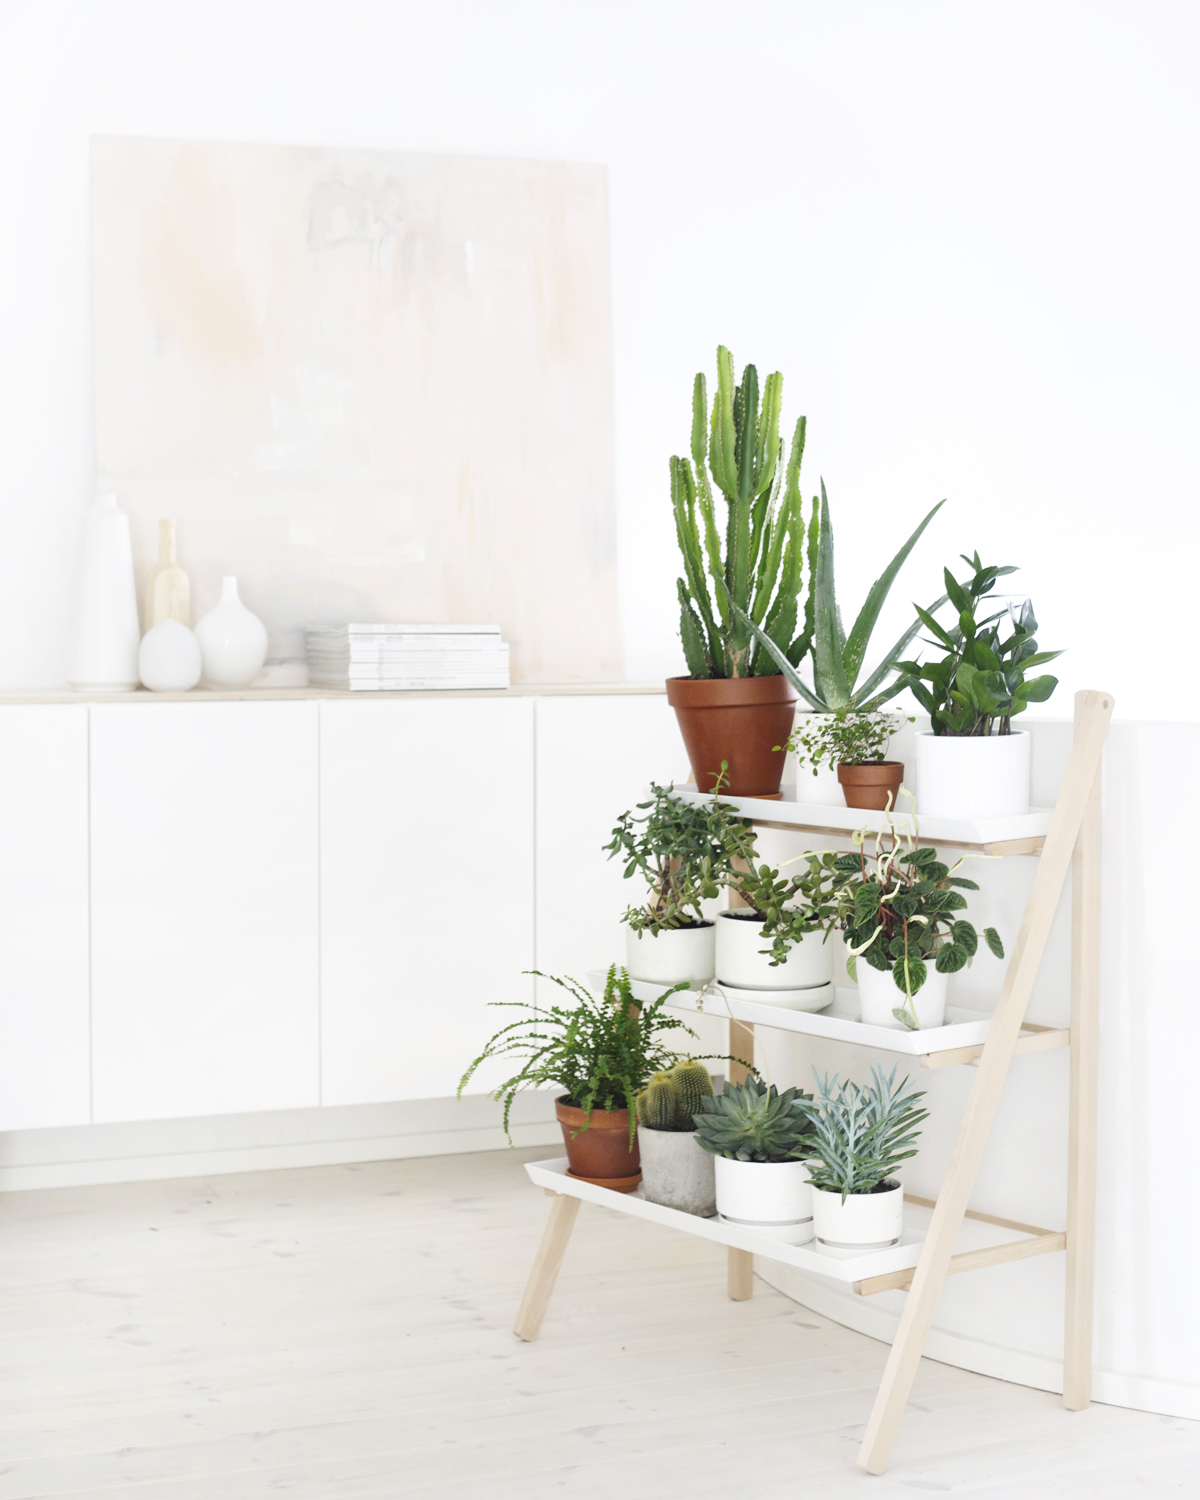 T d c interior styling indoor plants Images of indoor plants